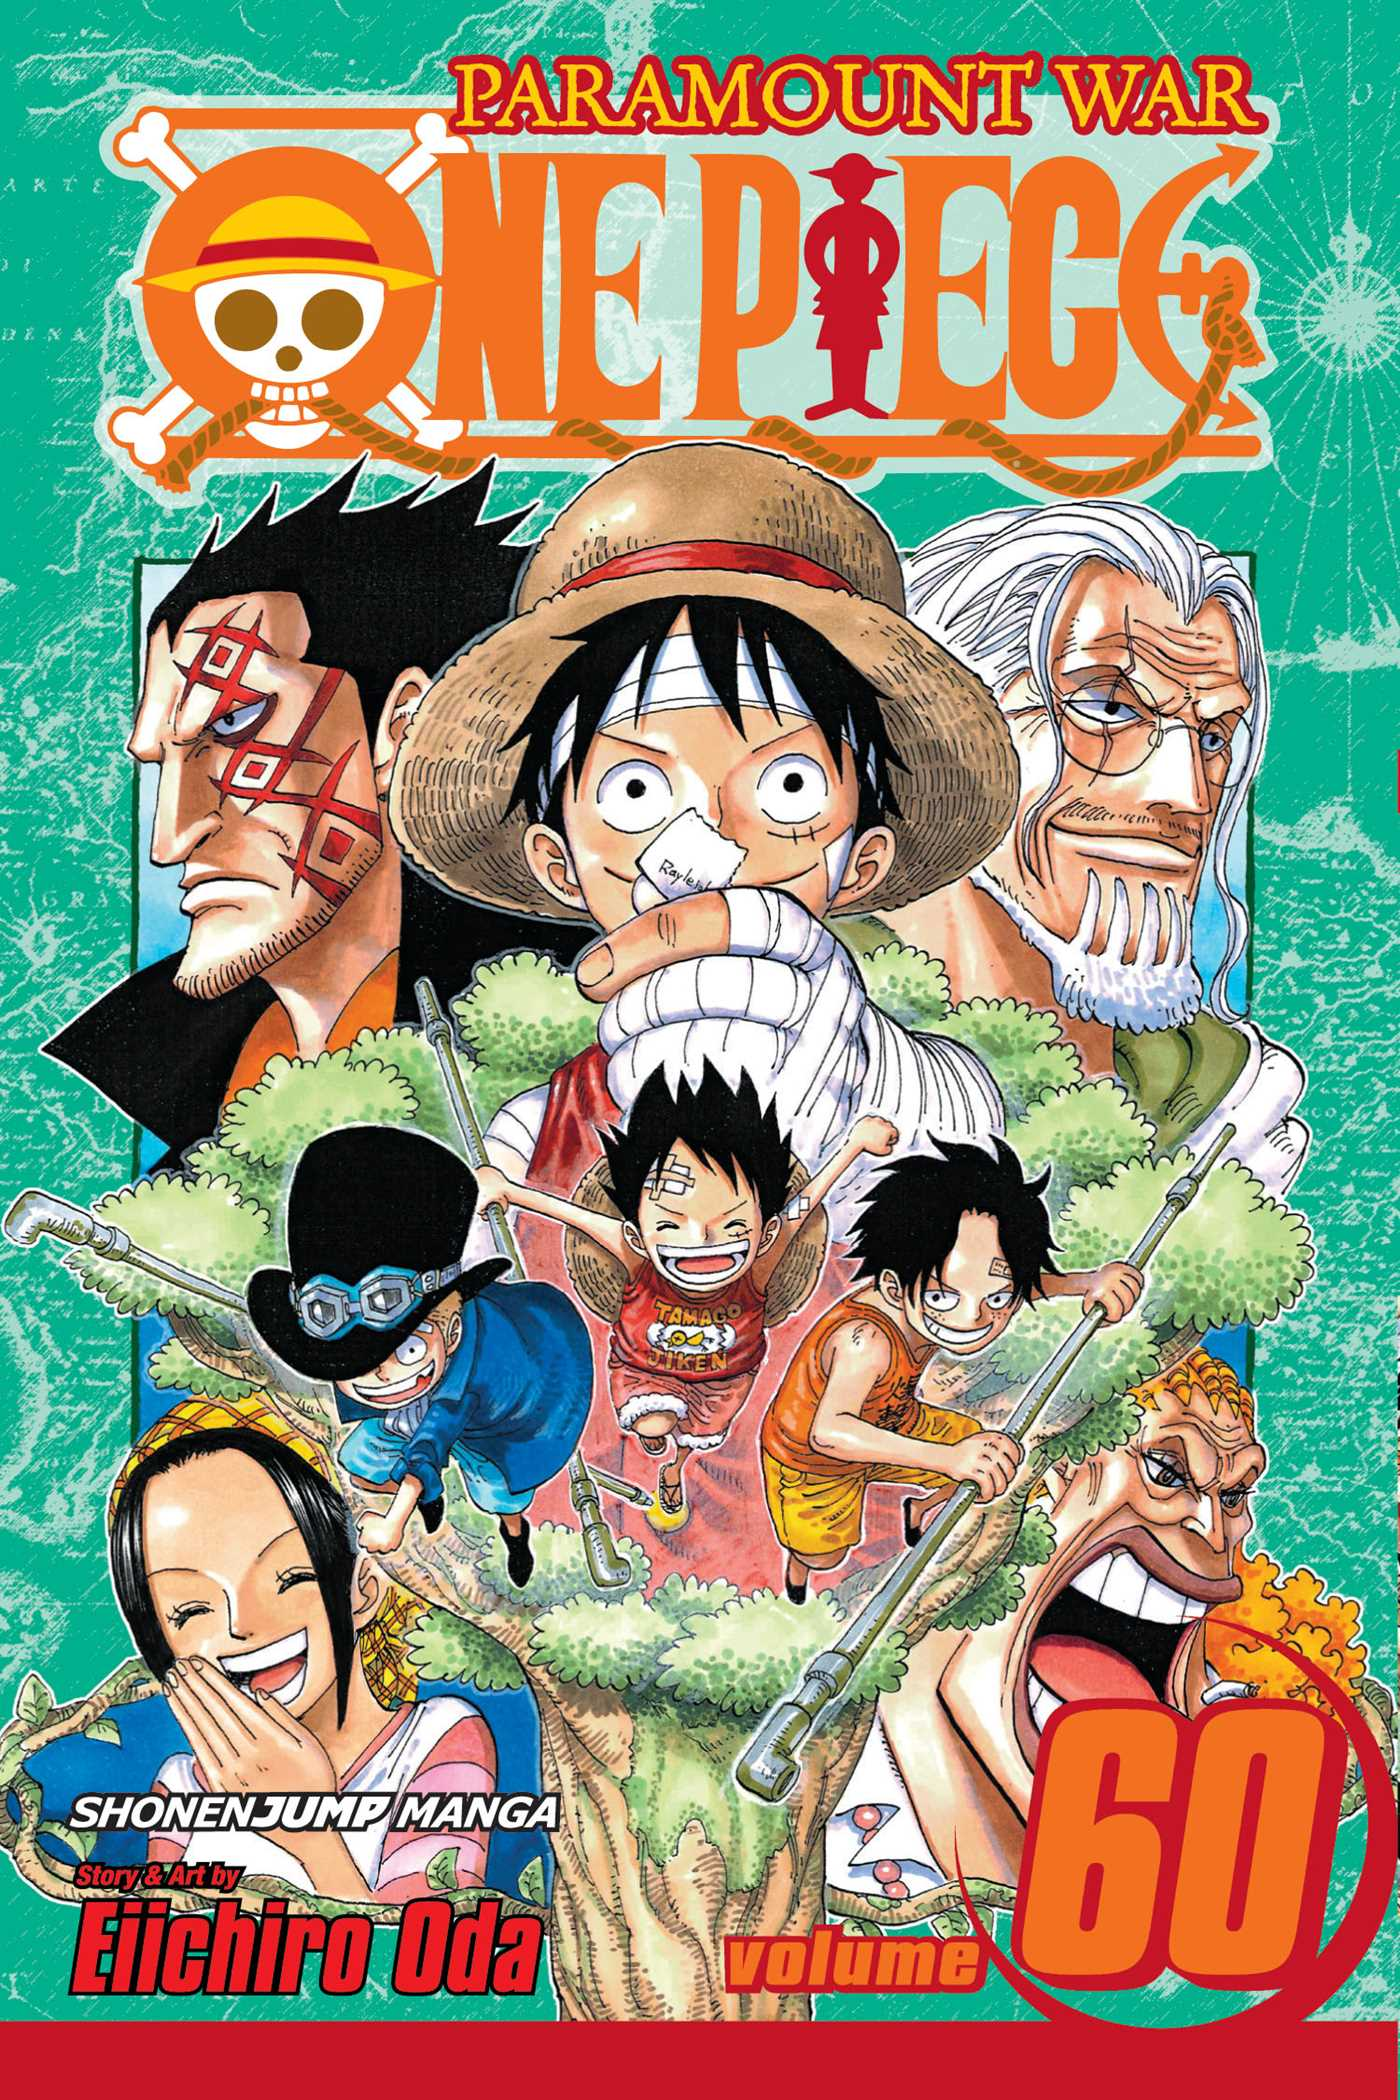 One piece vol 60 9781421540856 hr